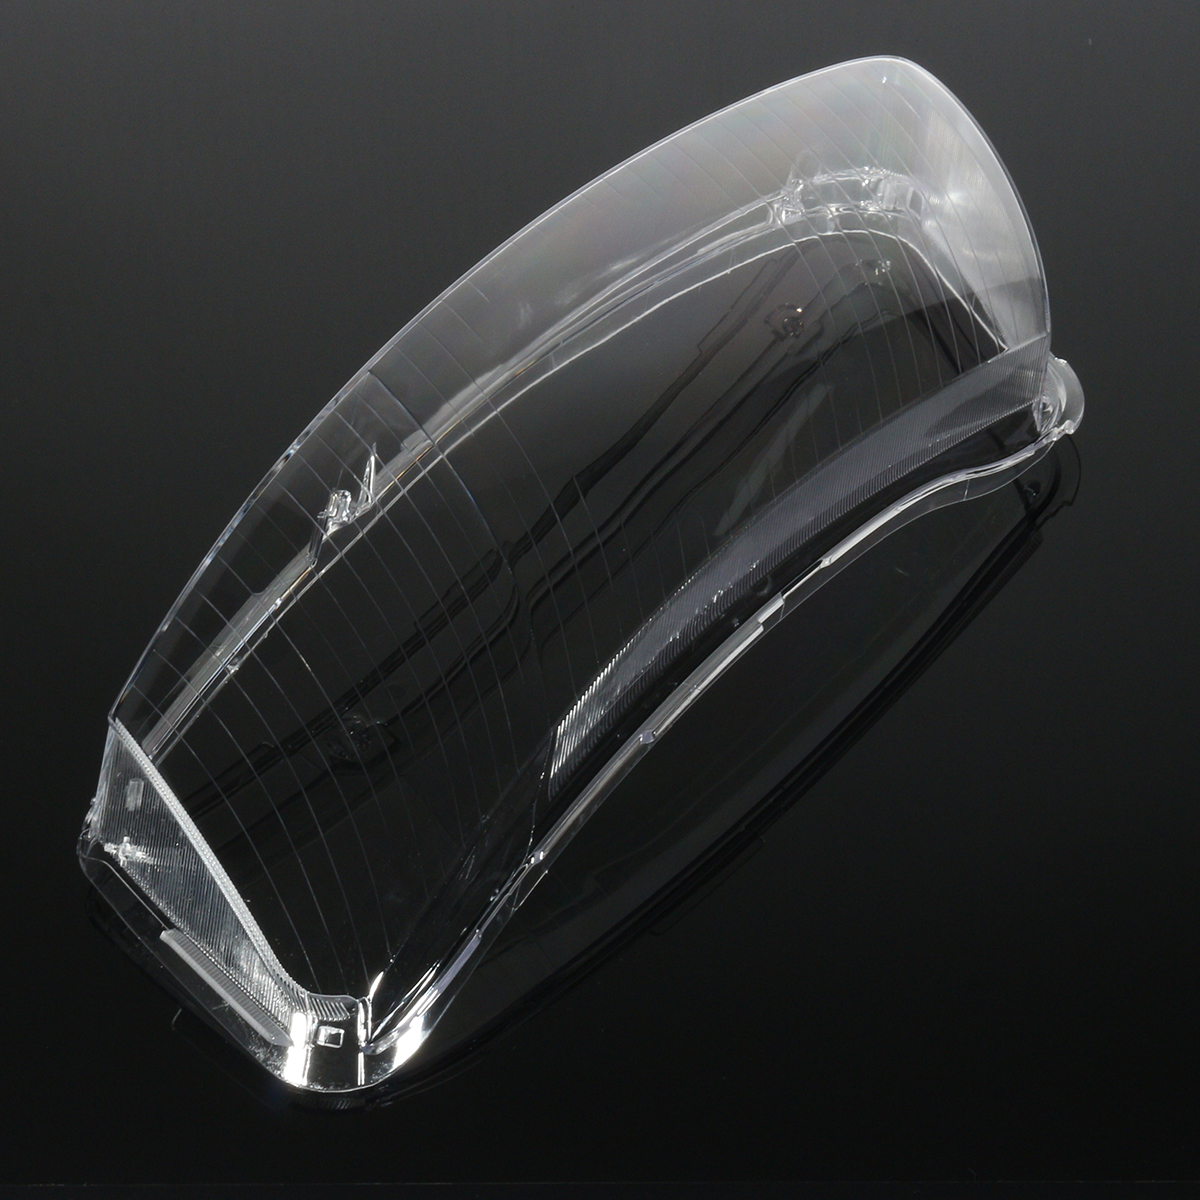 Car Headlight Lens Lampshade Clear PC Shell Cover Replacement Pair for Audi A6 C6 2006-2011